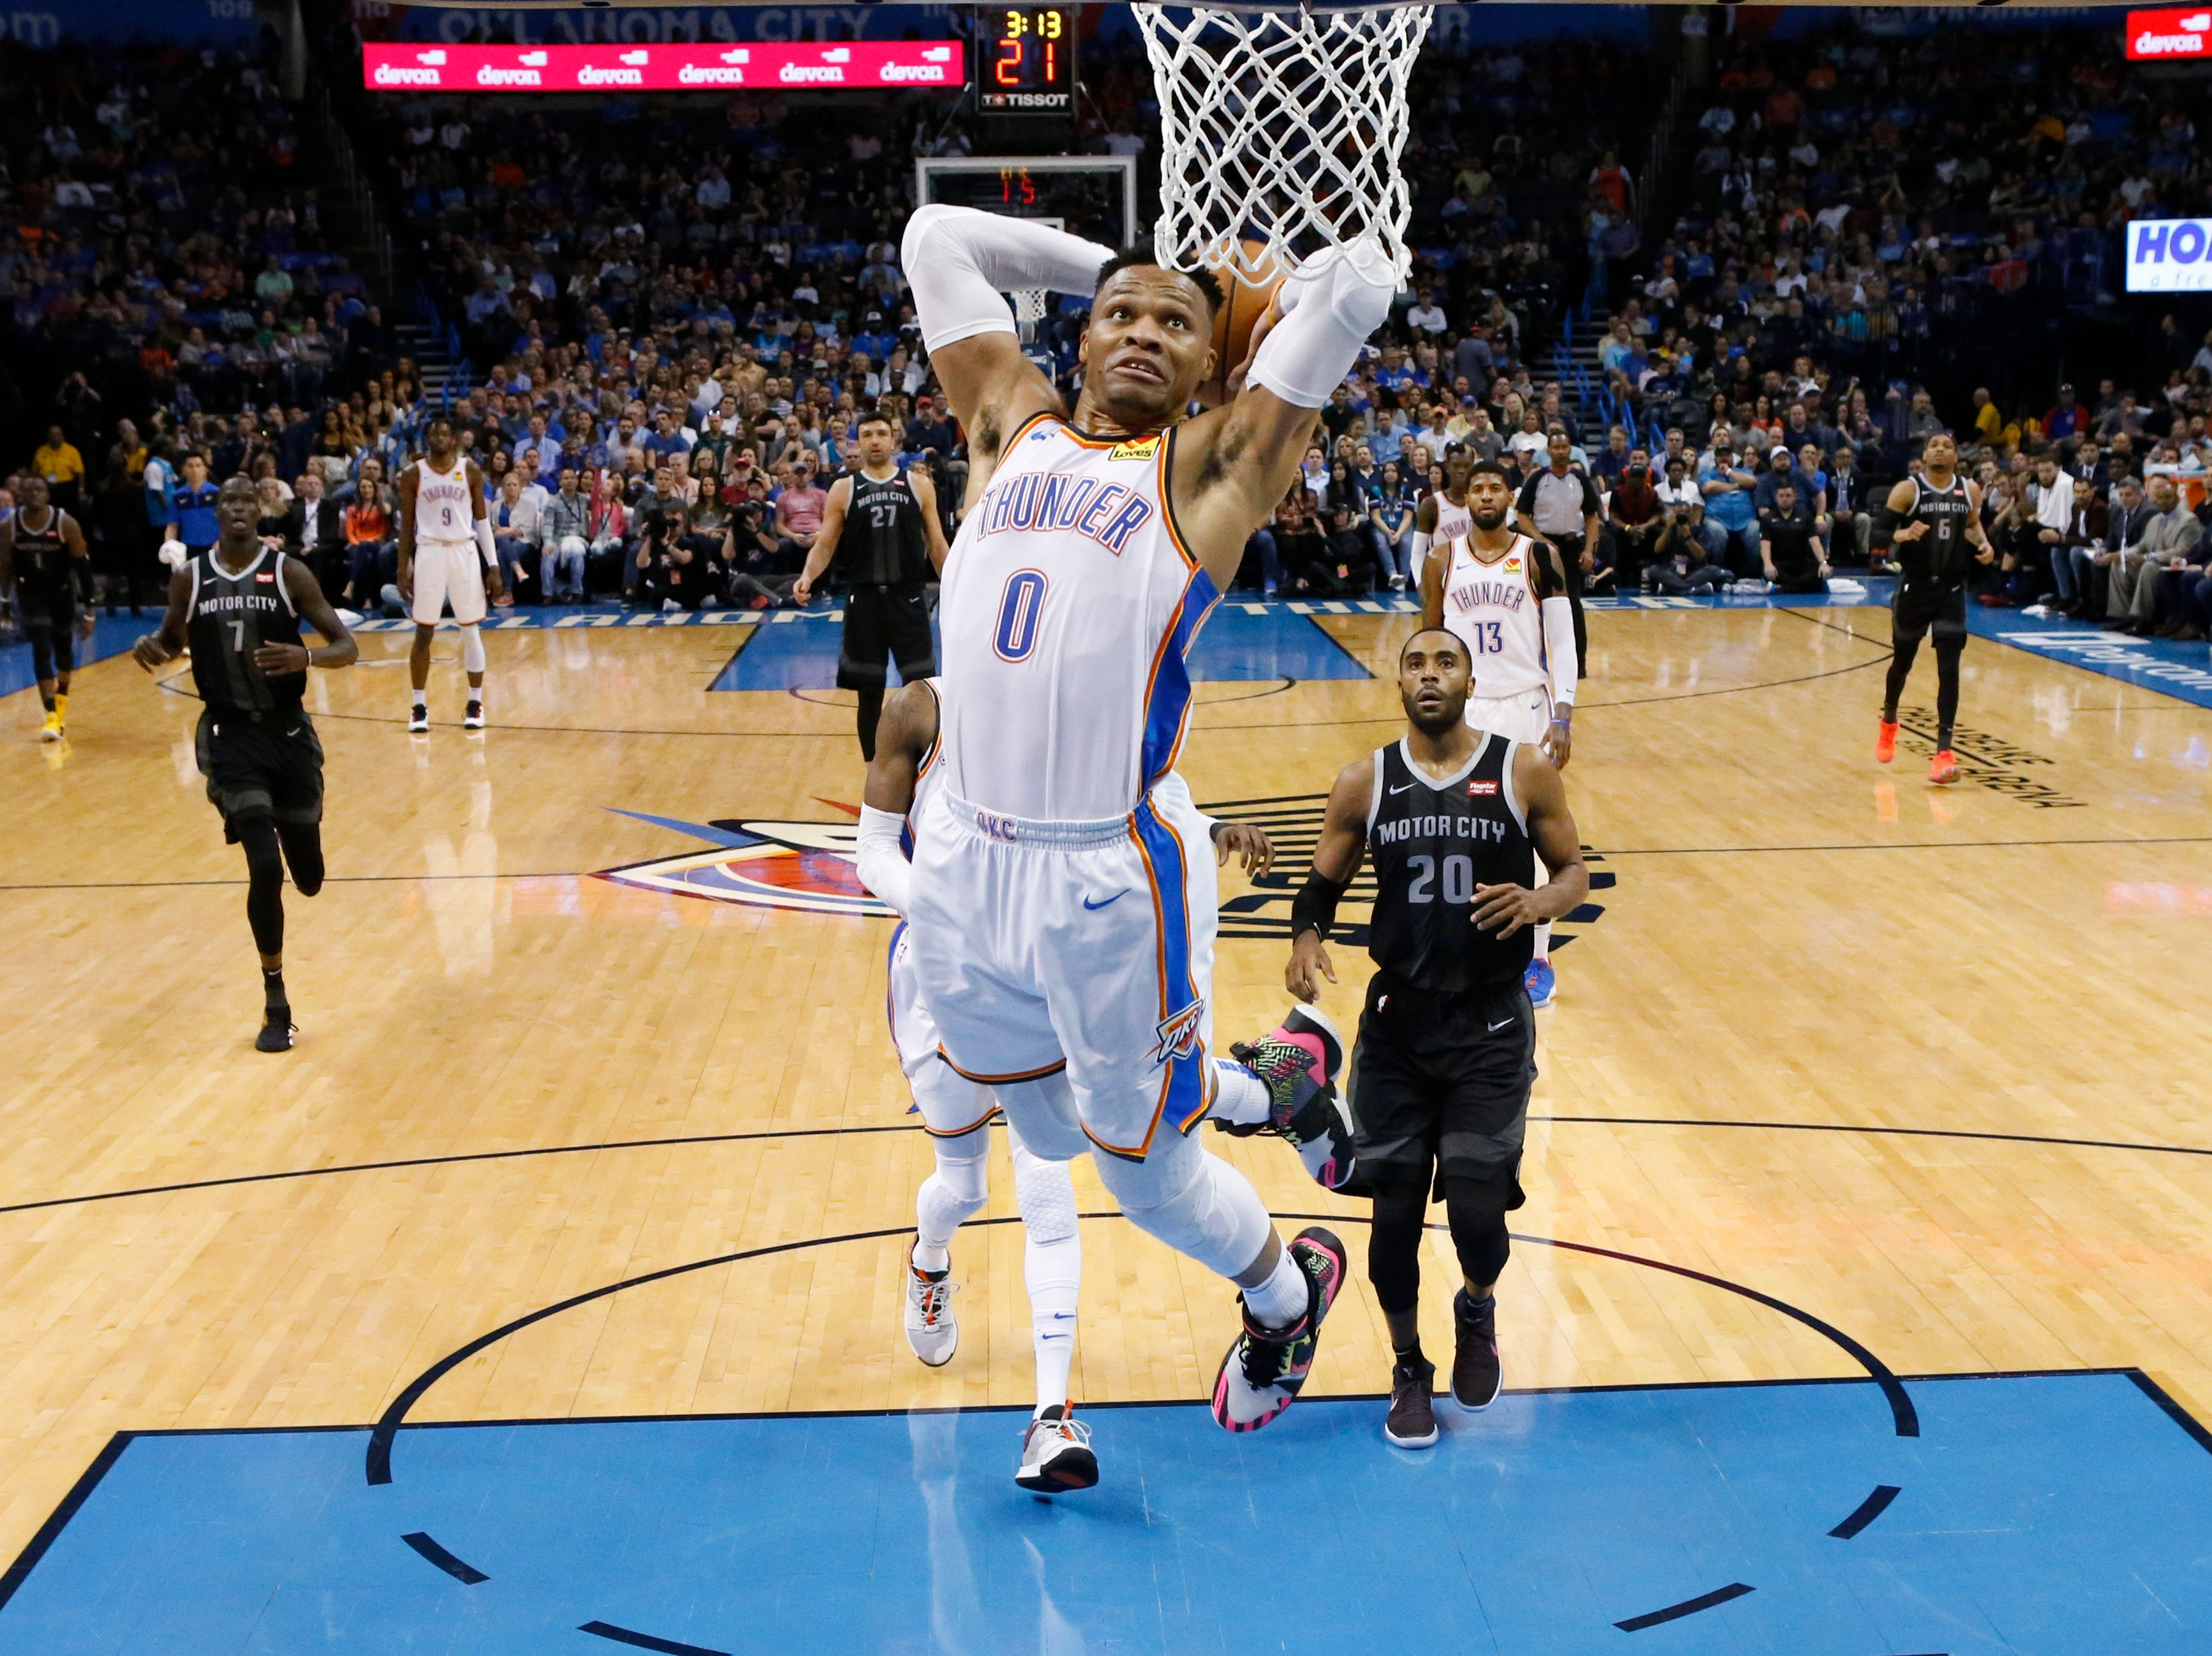 Oklahoma City Thunder guard Russell Westbrook (0) goes up for a dunk in front of Detroit Pistons guard Wayne Ellington (20) during the first half.